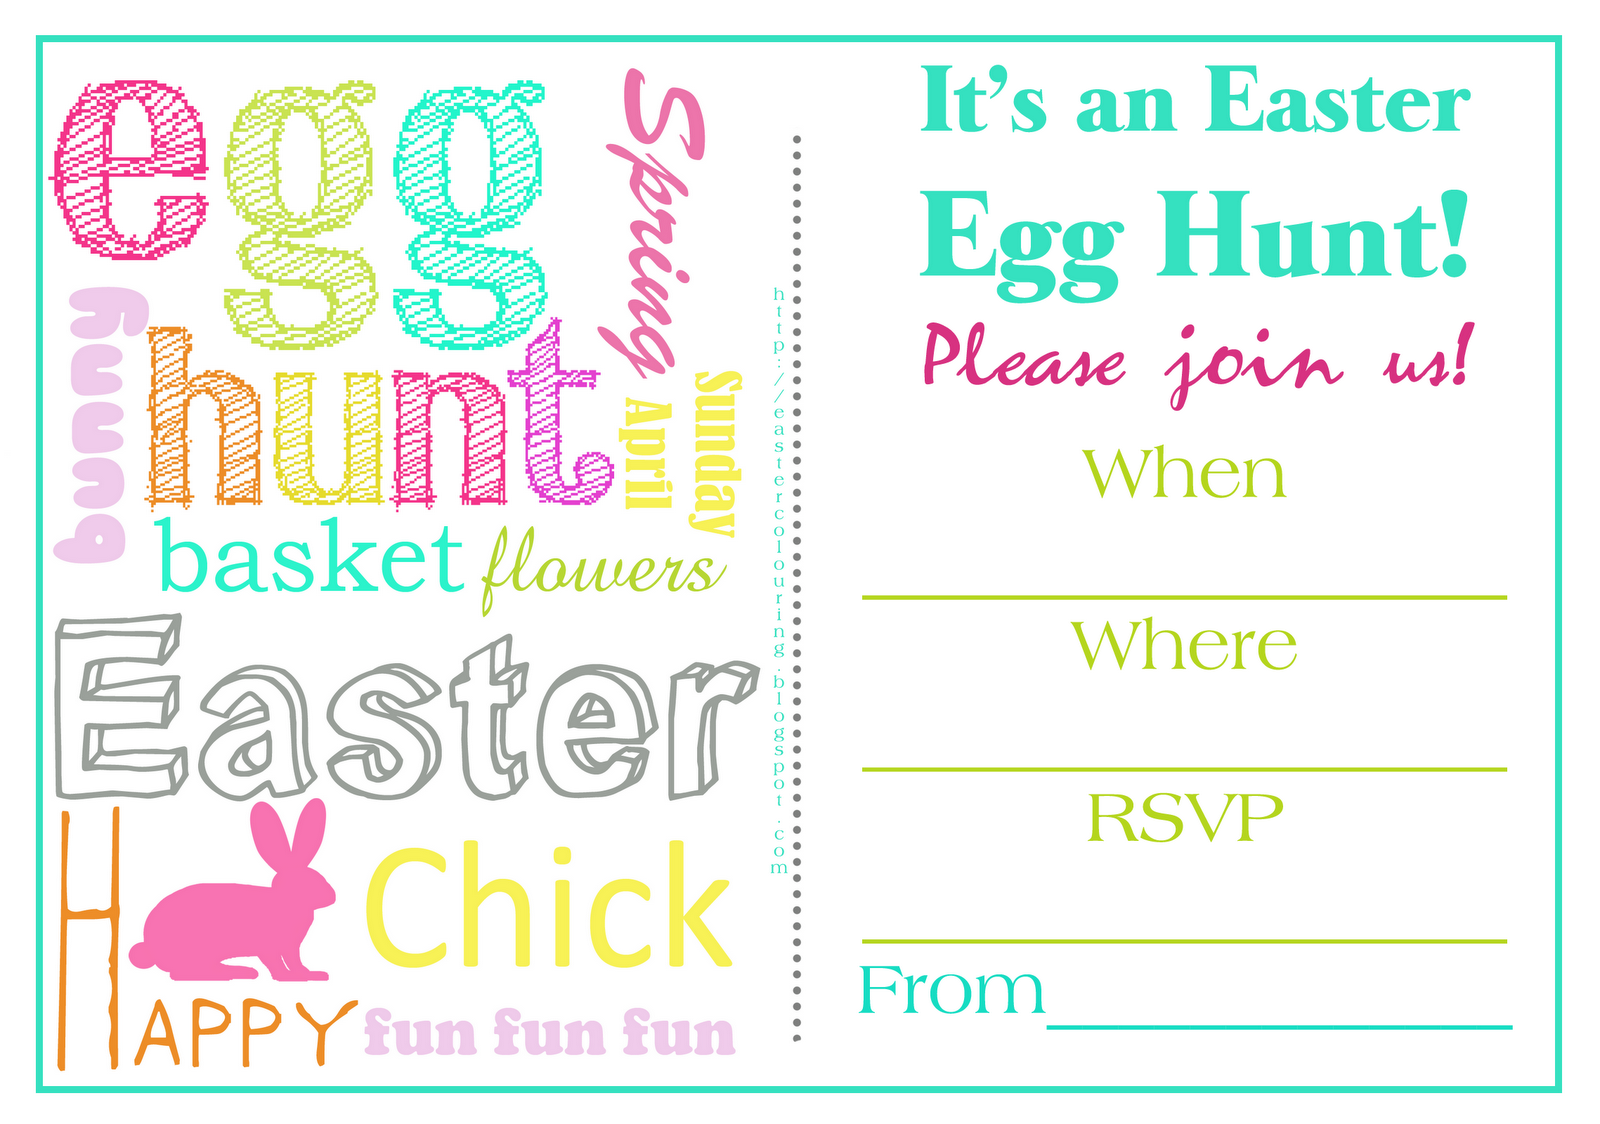 free easter egg hunt party invites fill in the blanks to